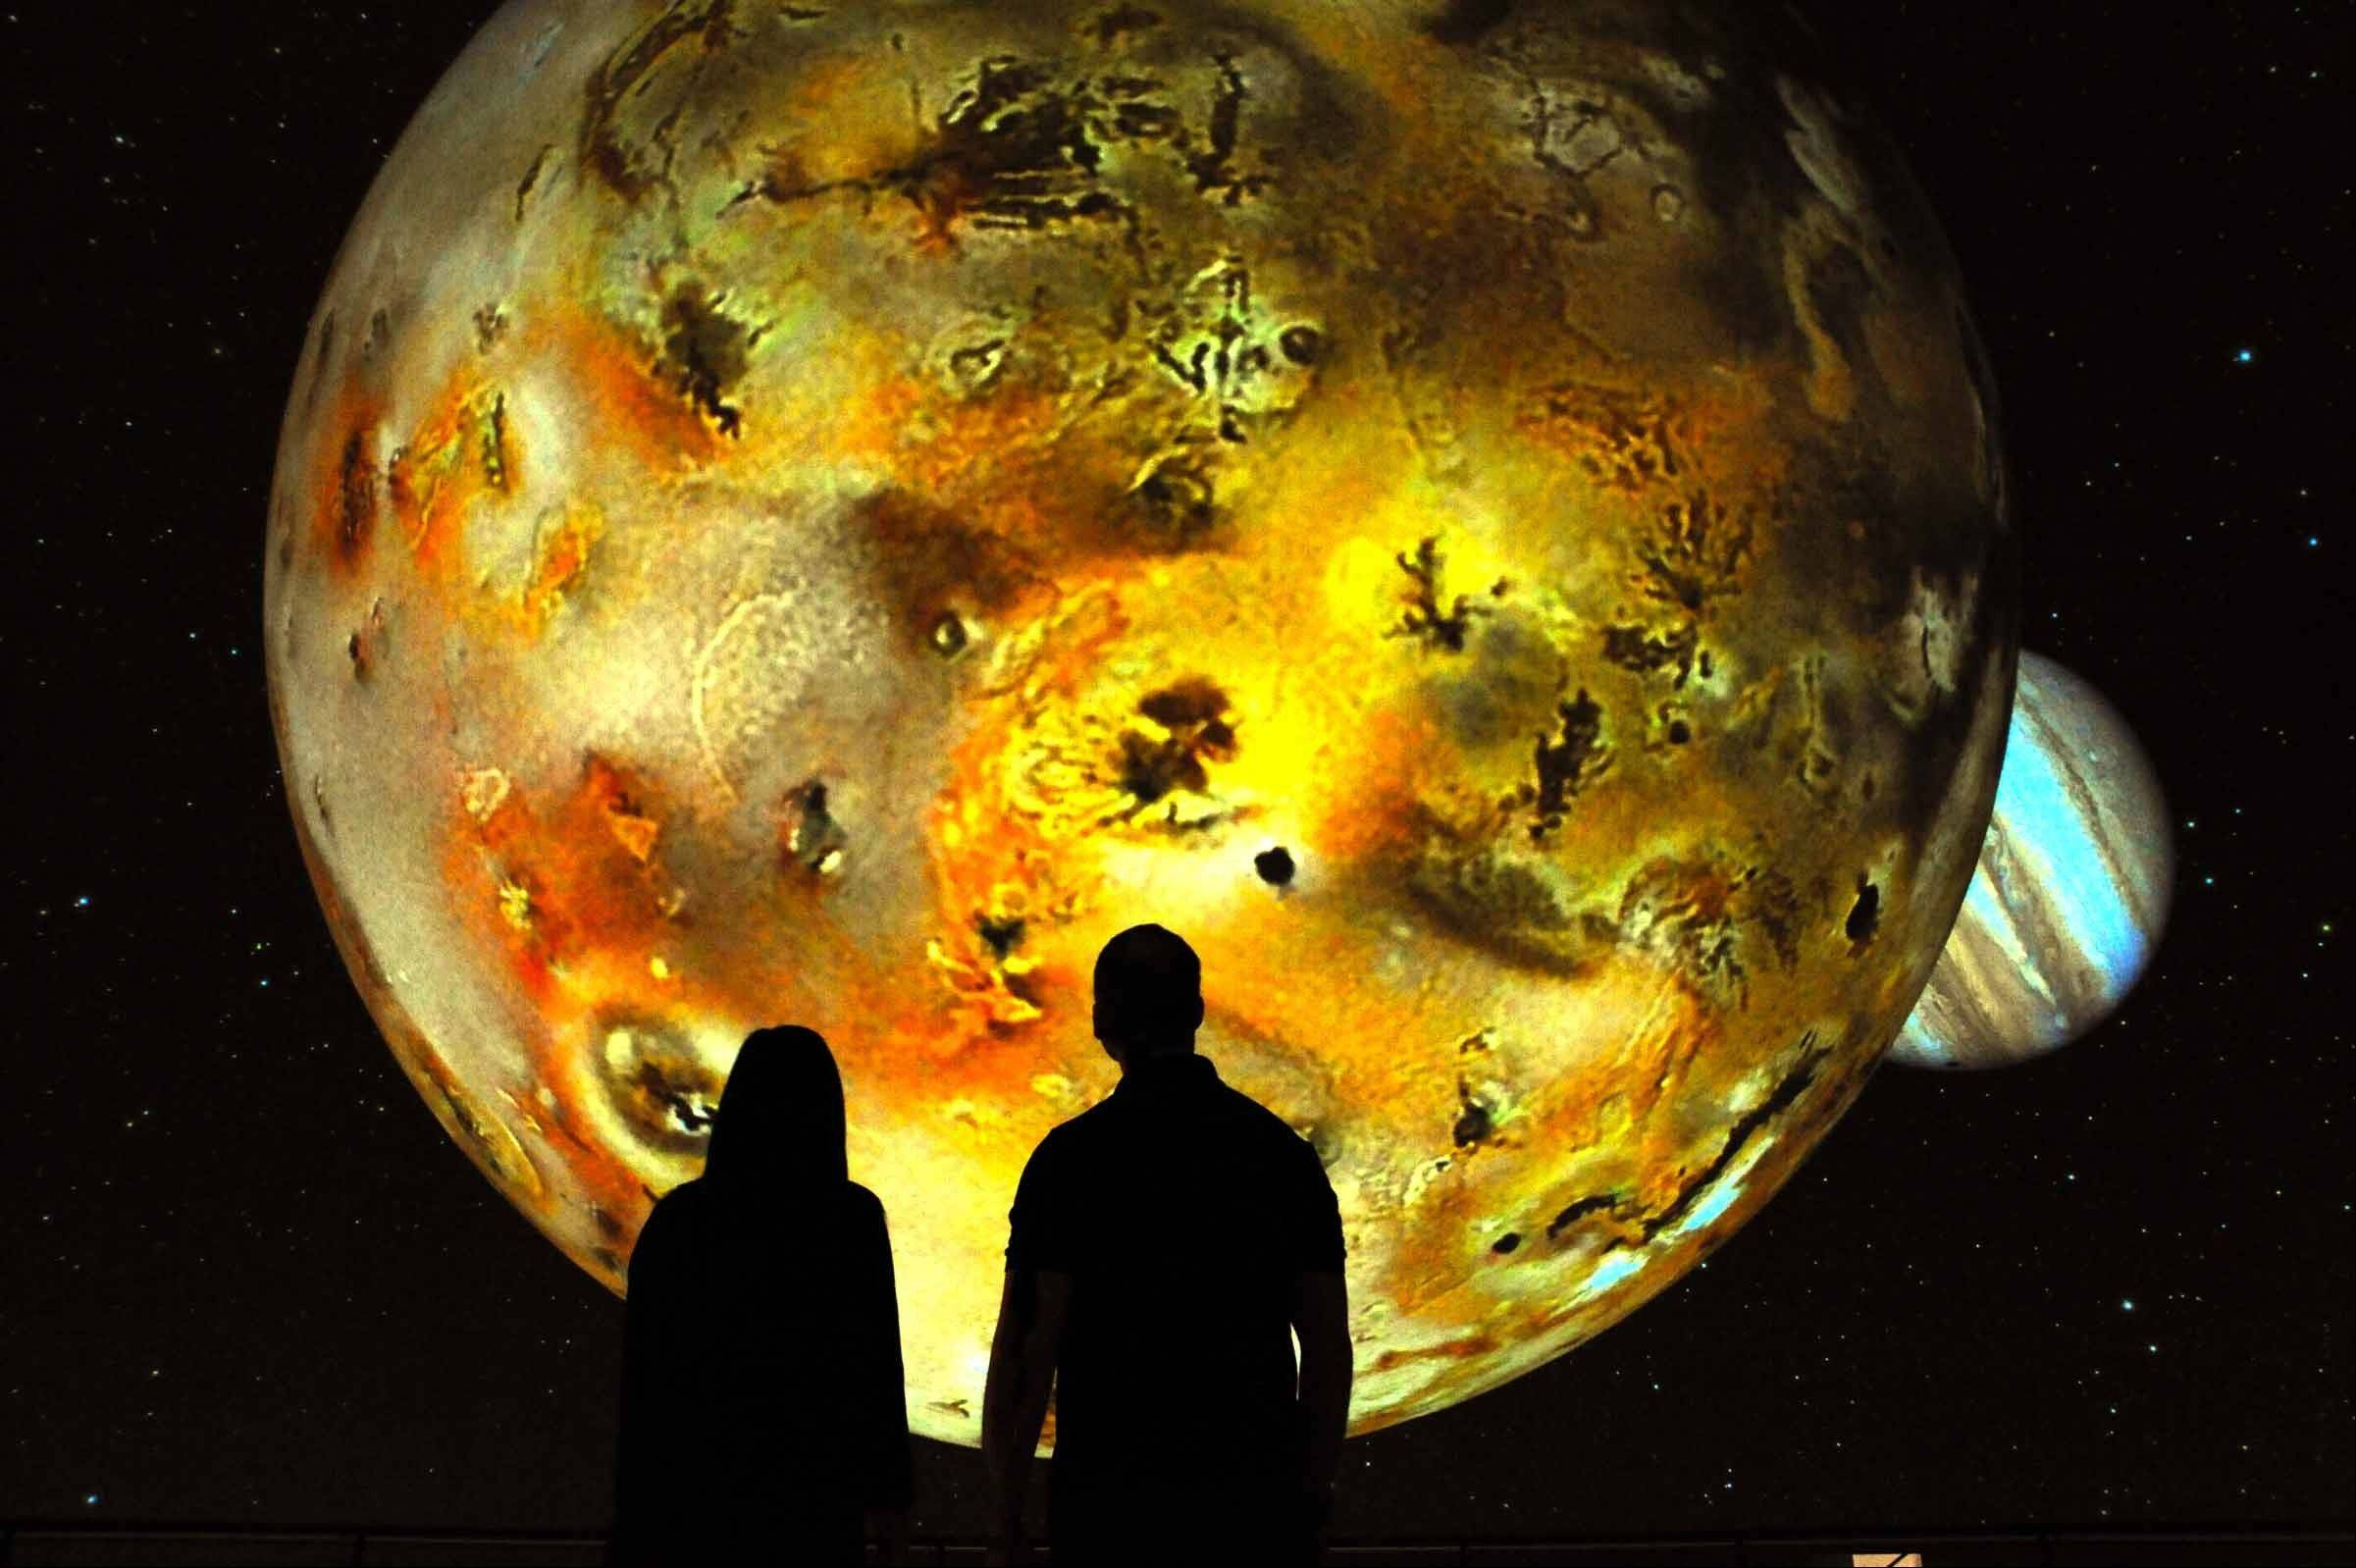 """Deep Space Adventure"" launches today at the Adler Planetarium in Chicago."